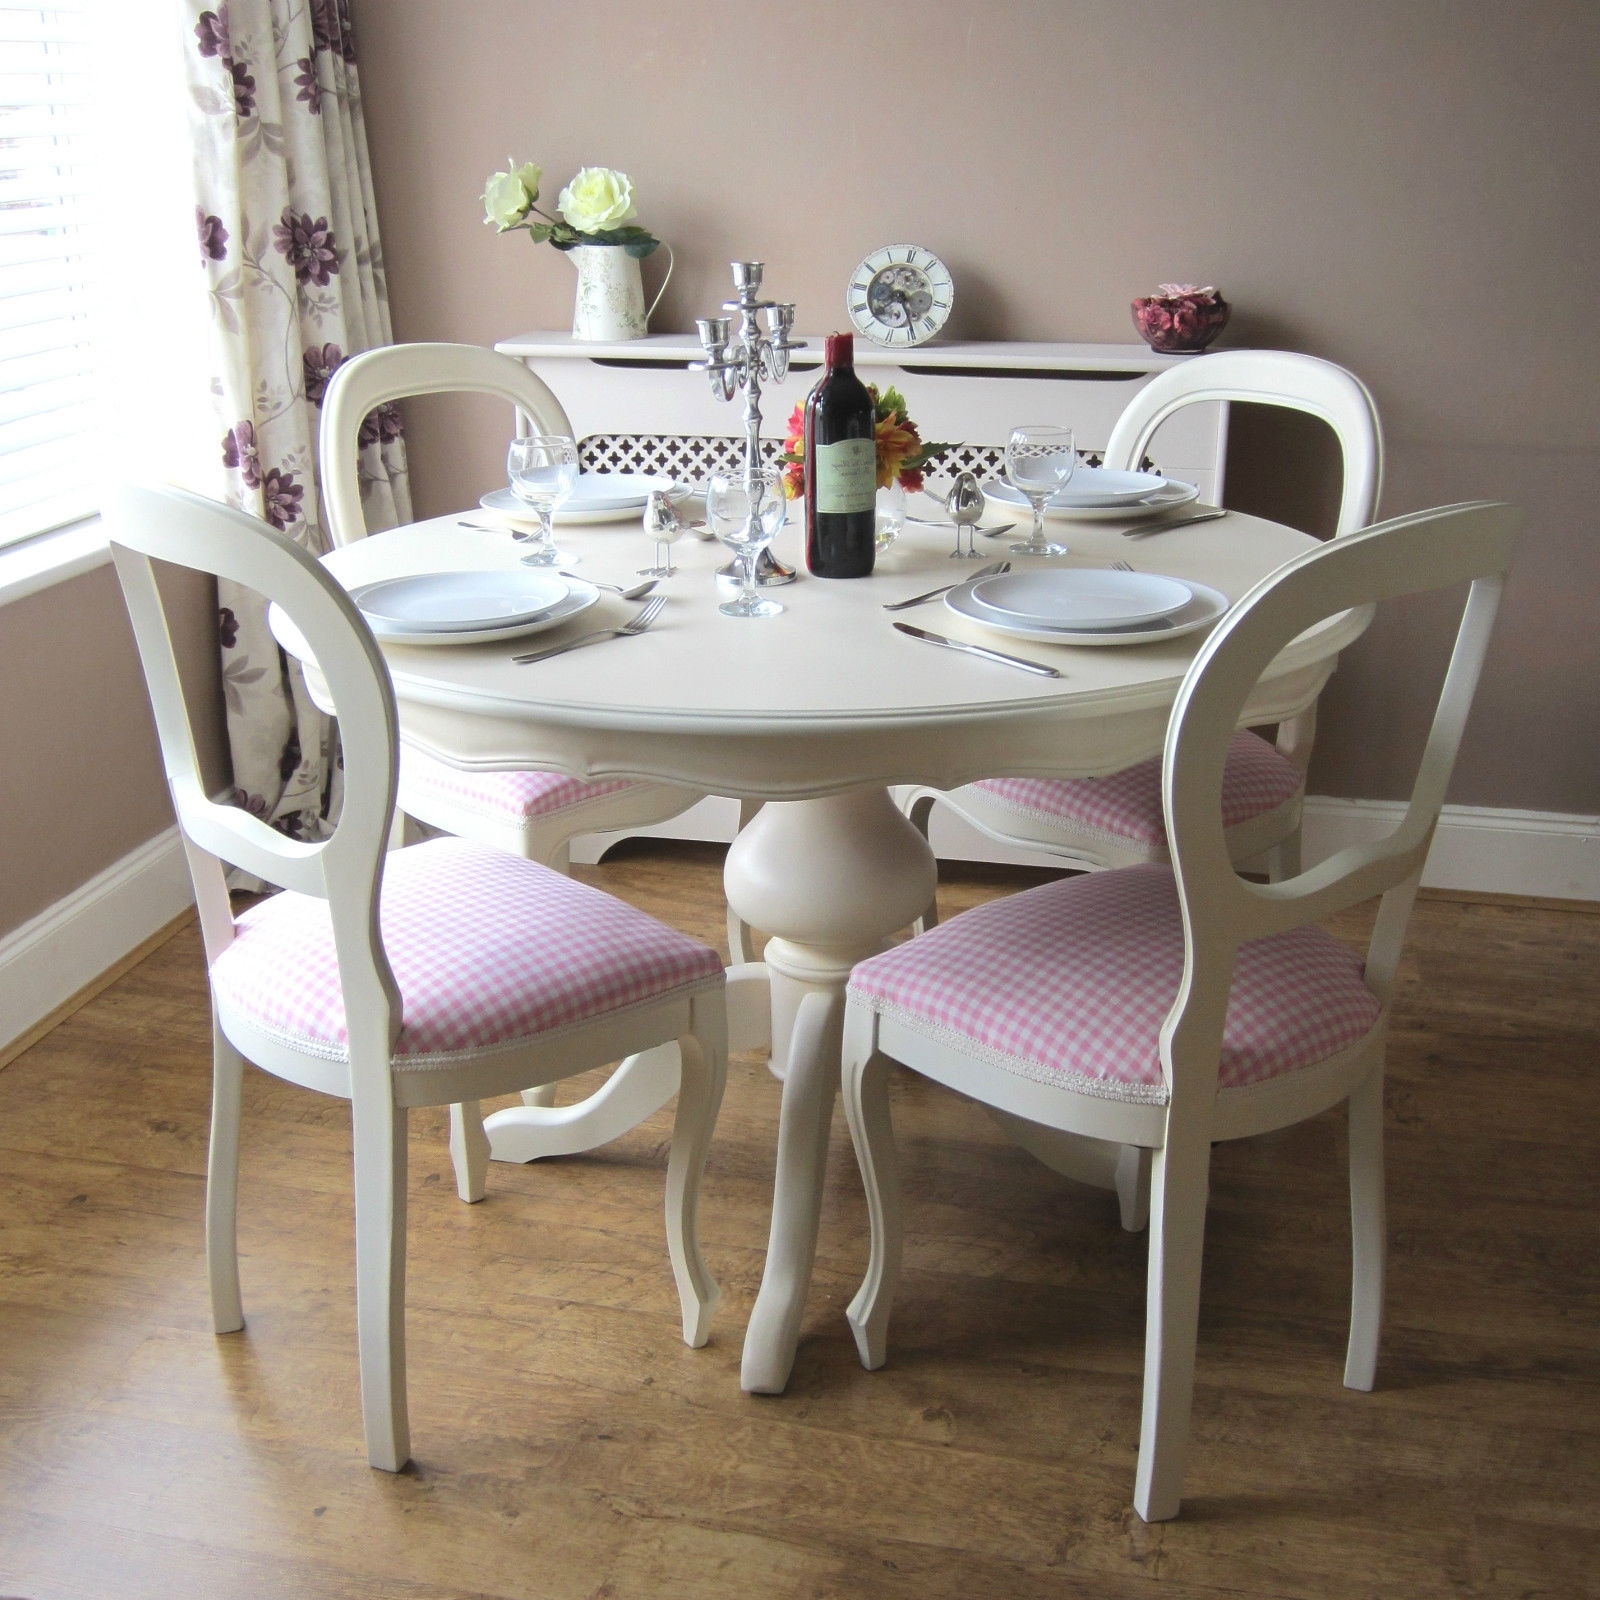 Shabby Chic Table And Chairs (View 3 of 25)